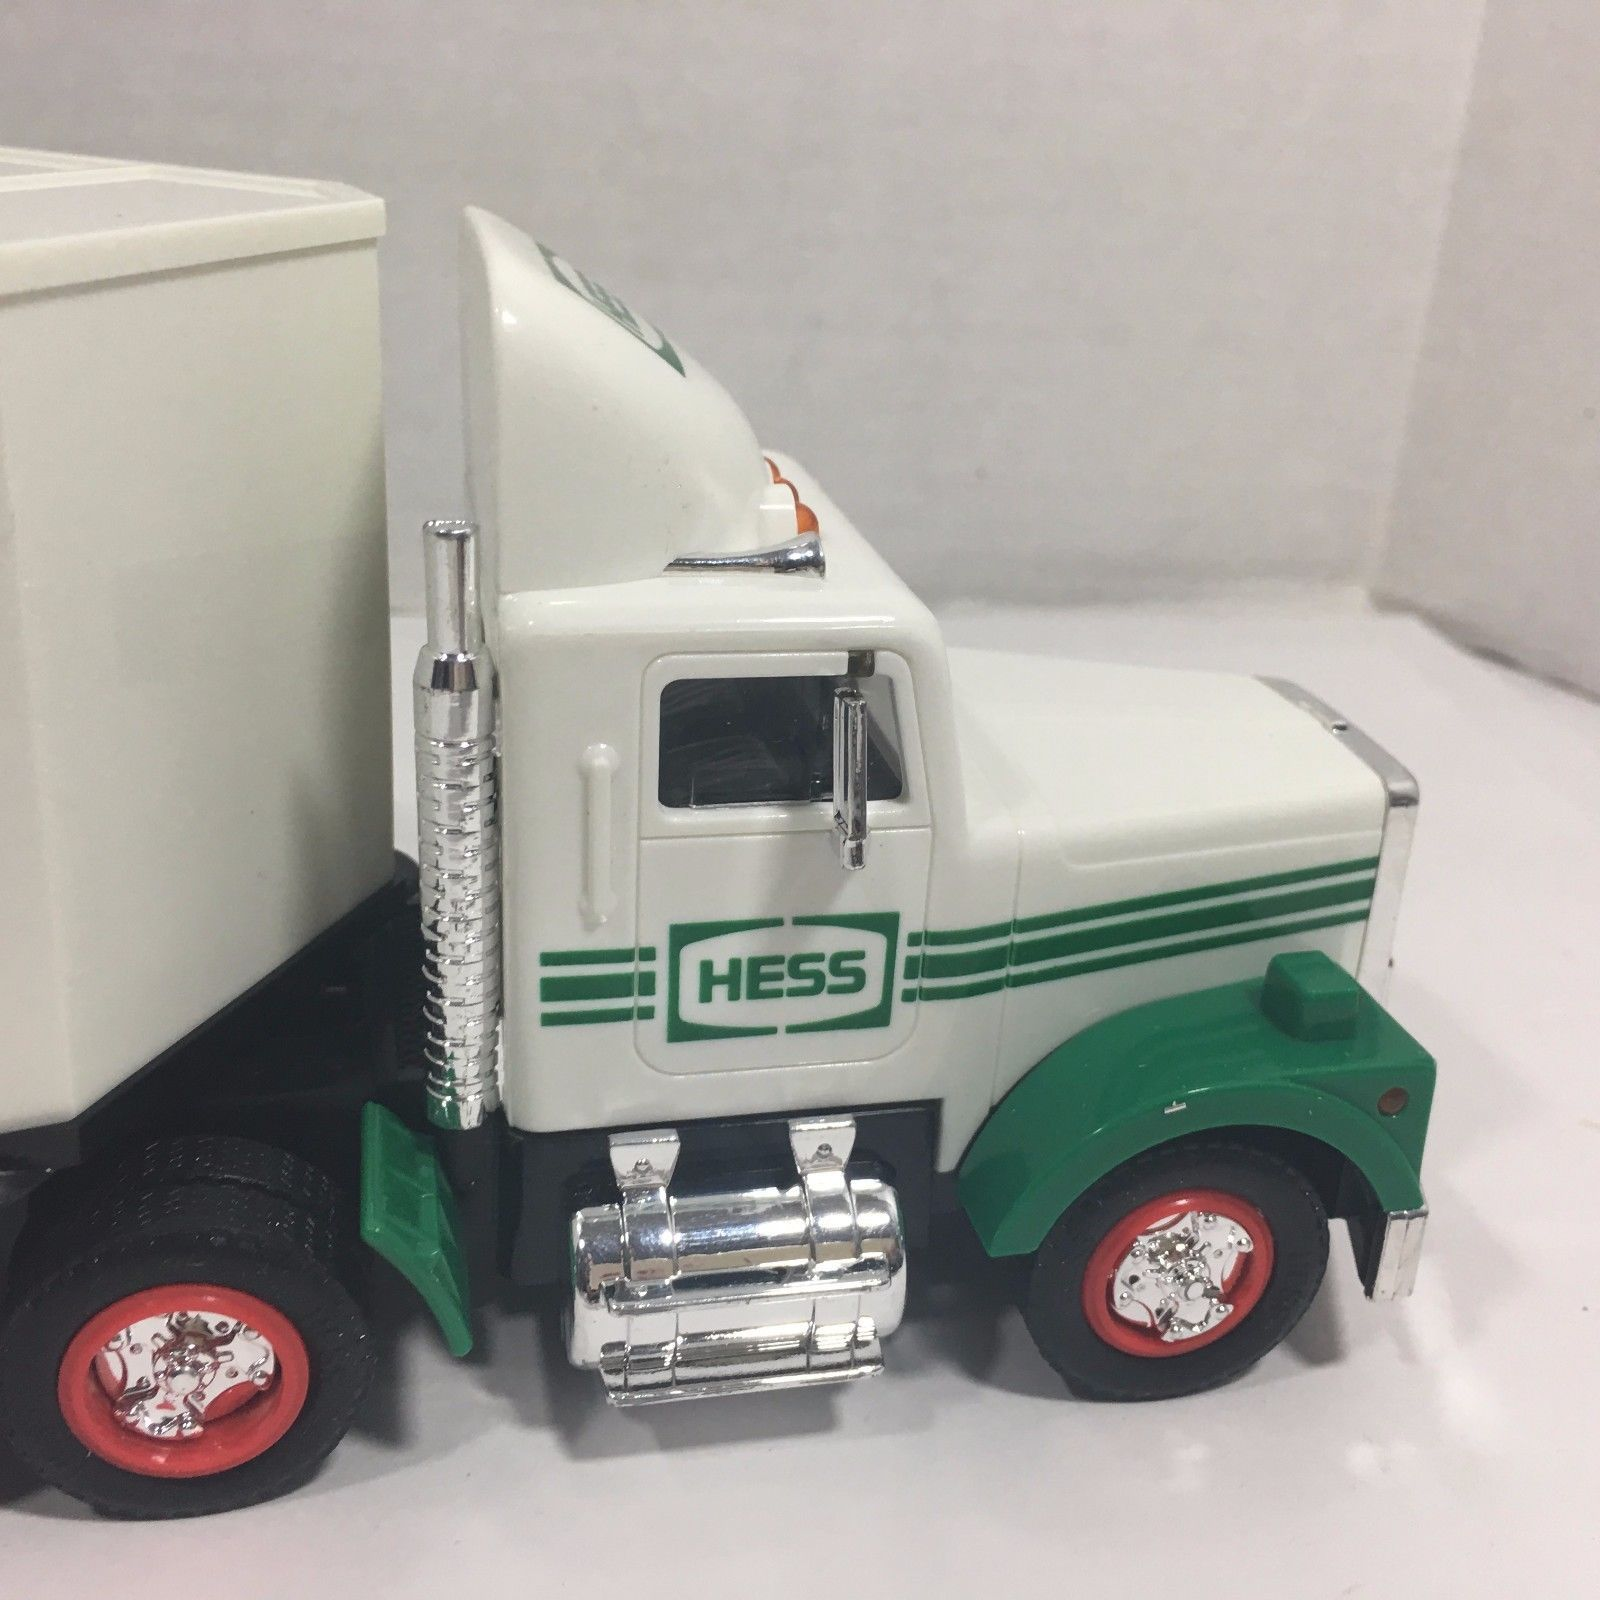 1992 Hess Truck In Original Box MINT condition